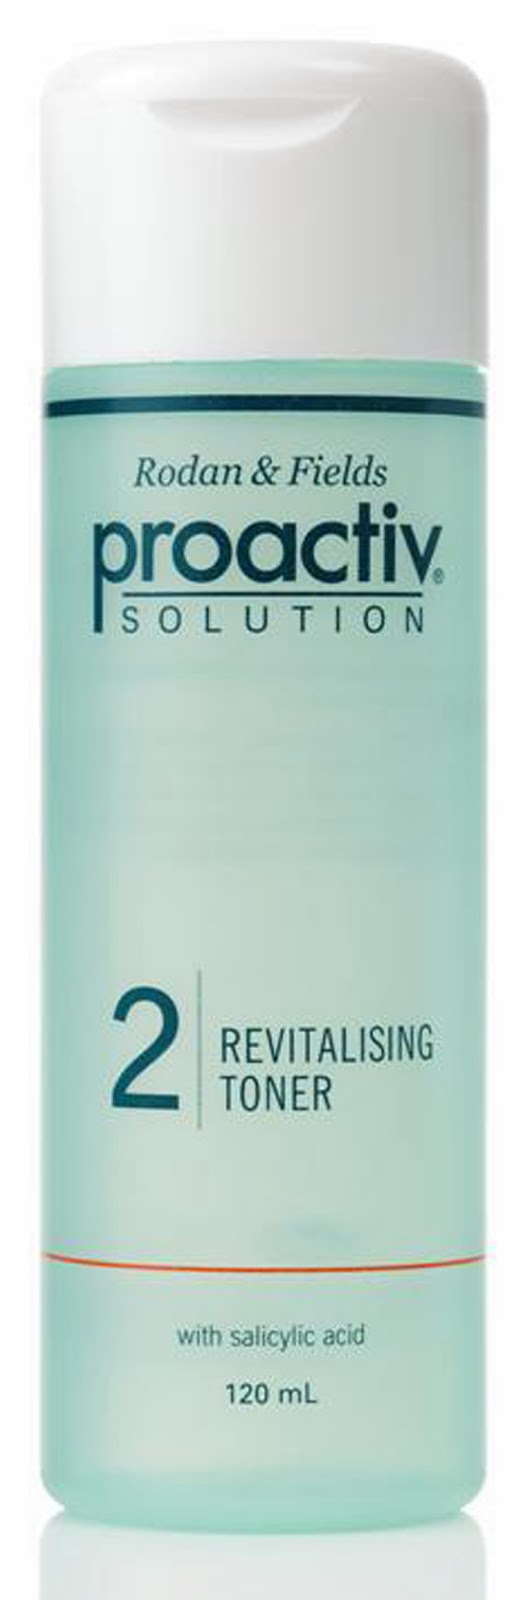 Proactiv Acne Treatment Kit Review